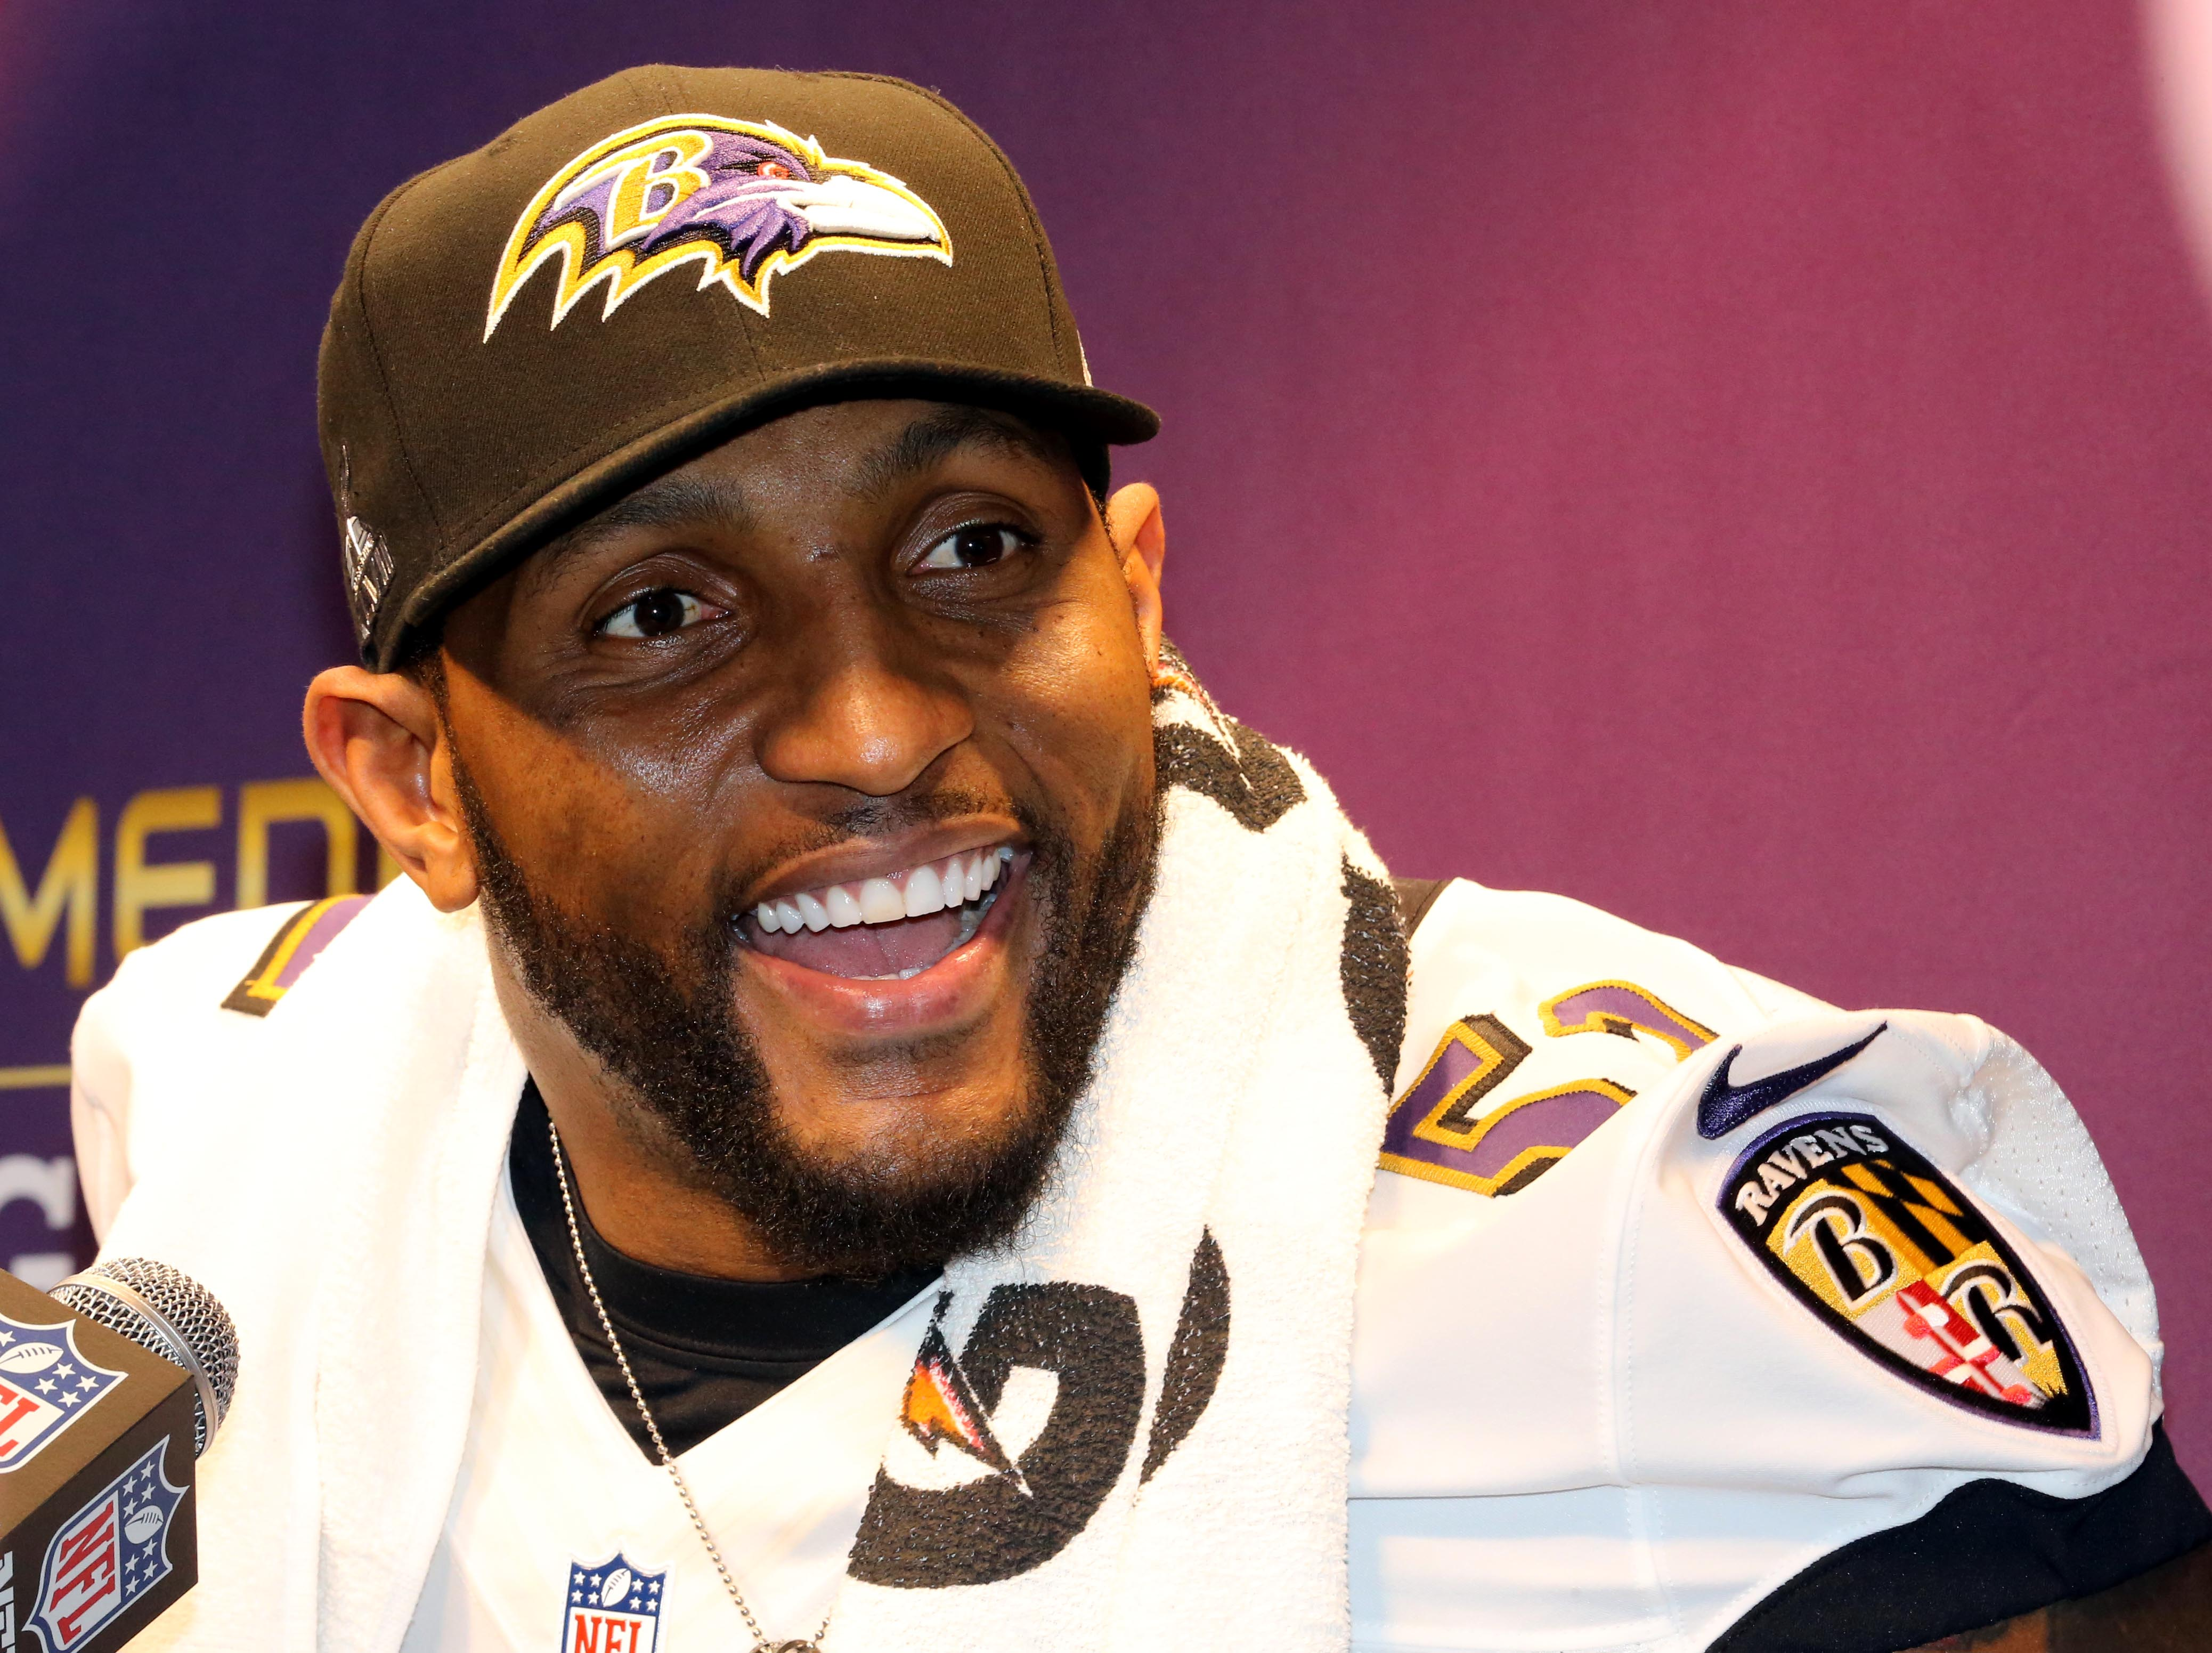 Ray Lewis answers a question during media day. (USA Today Sports)